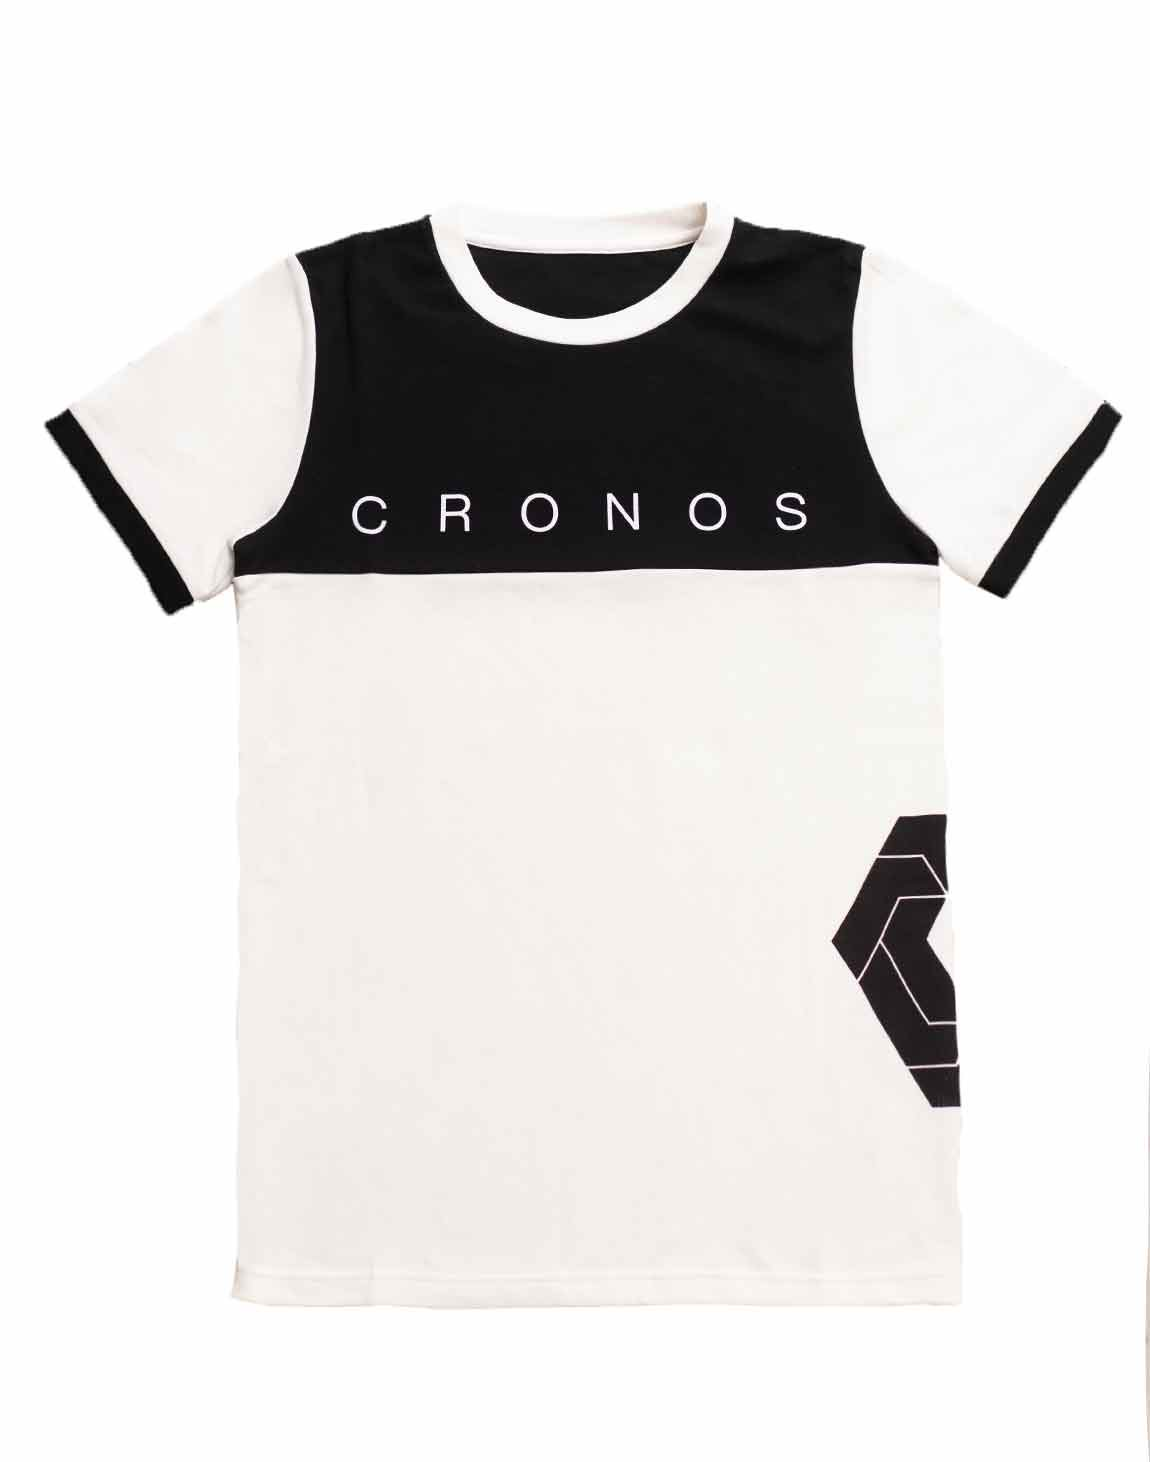 <img class='new_mark_img1' src='https://img.shop-pro.jp/img/new/icons1.gif' style='border:none;display:inline;margin:0px;padding:0px;width:auto;' />CRONOS Bi-COLOR SIDE LOGO T-SHIRTS【WHITE×BLACK】